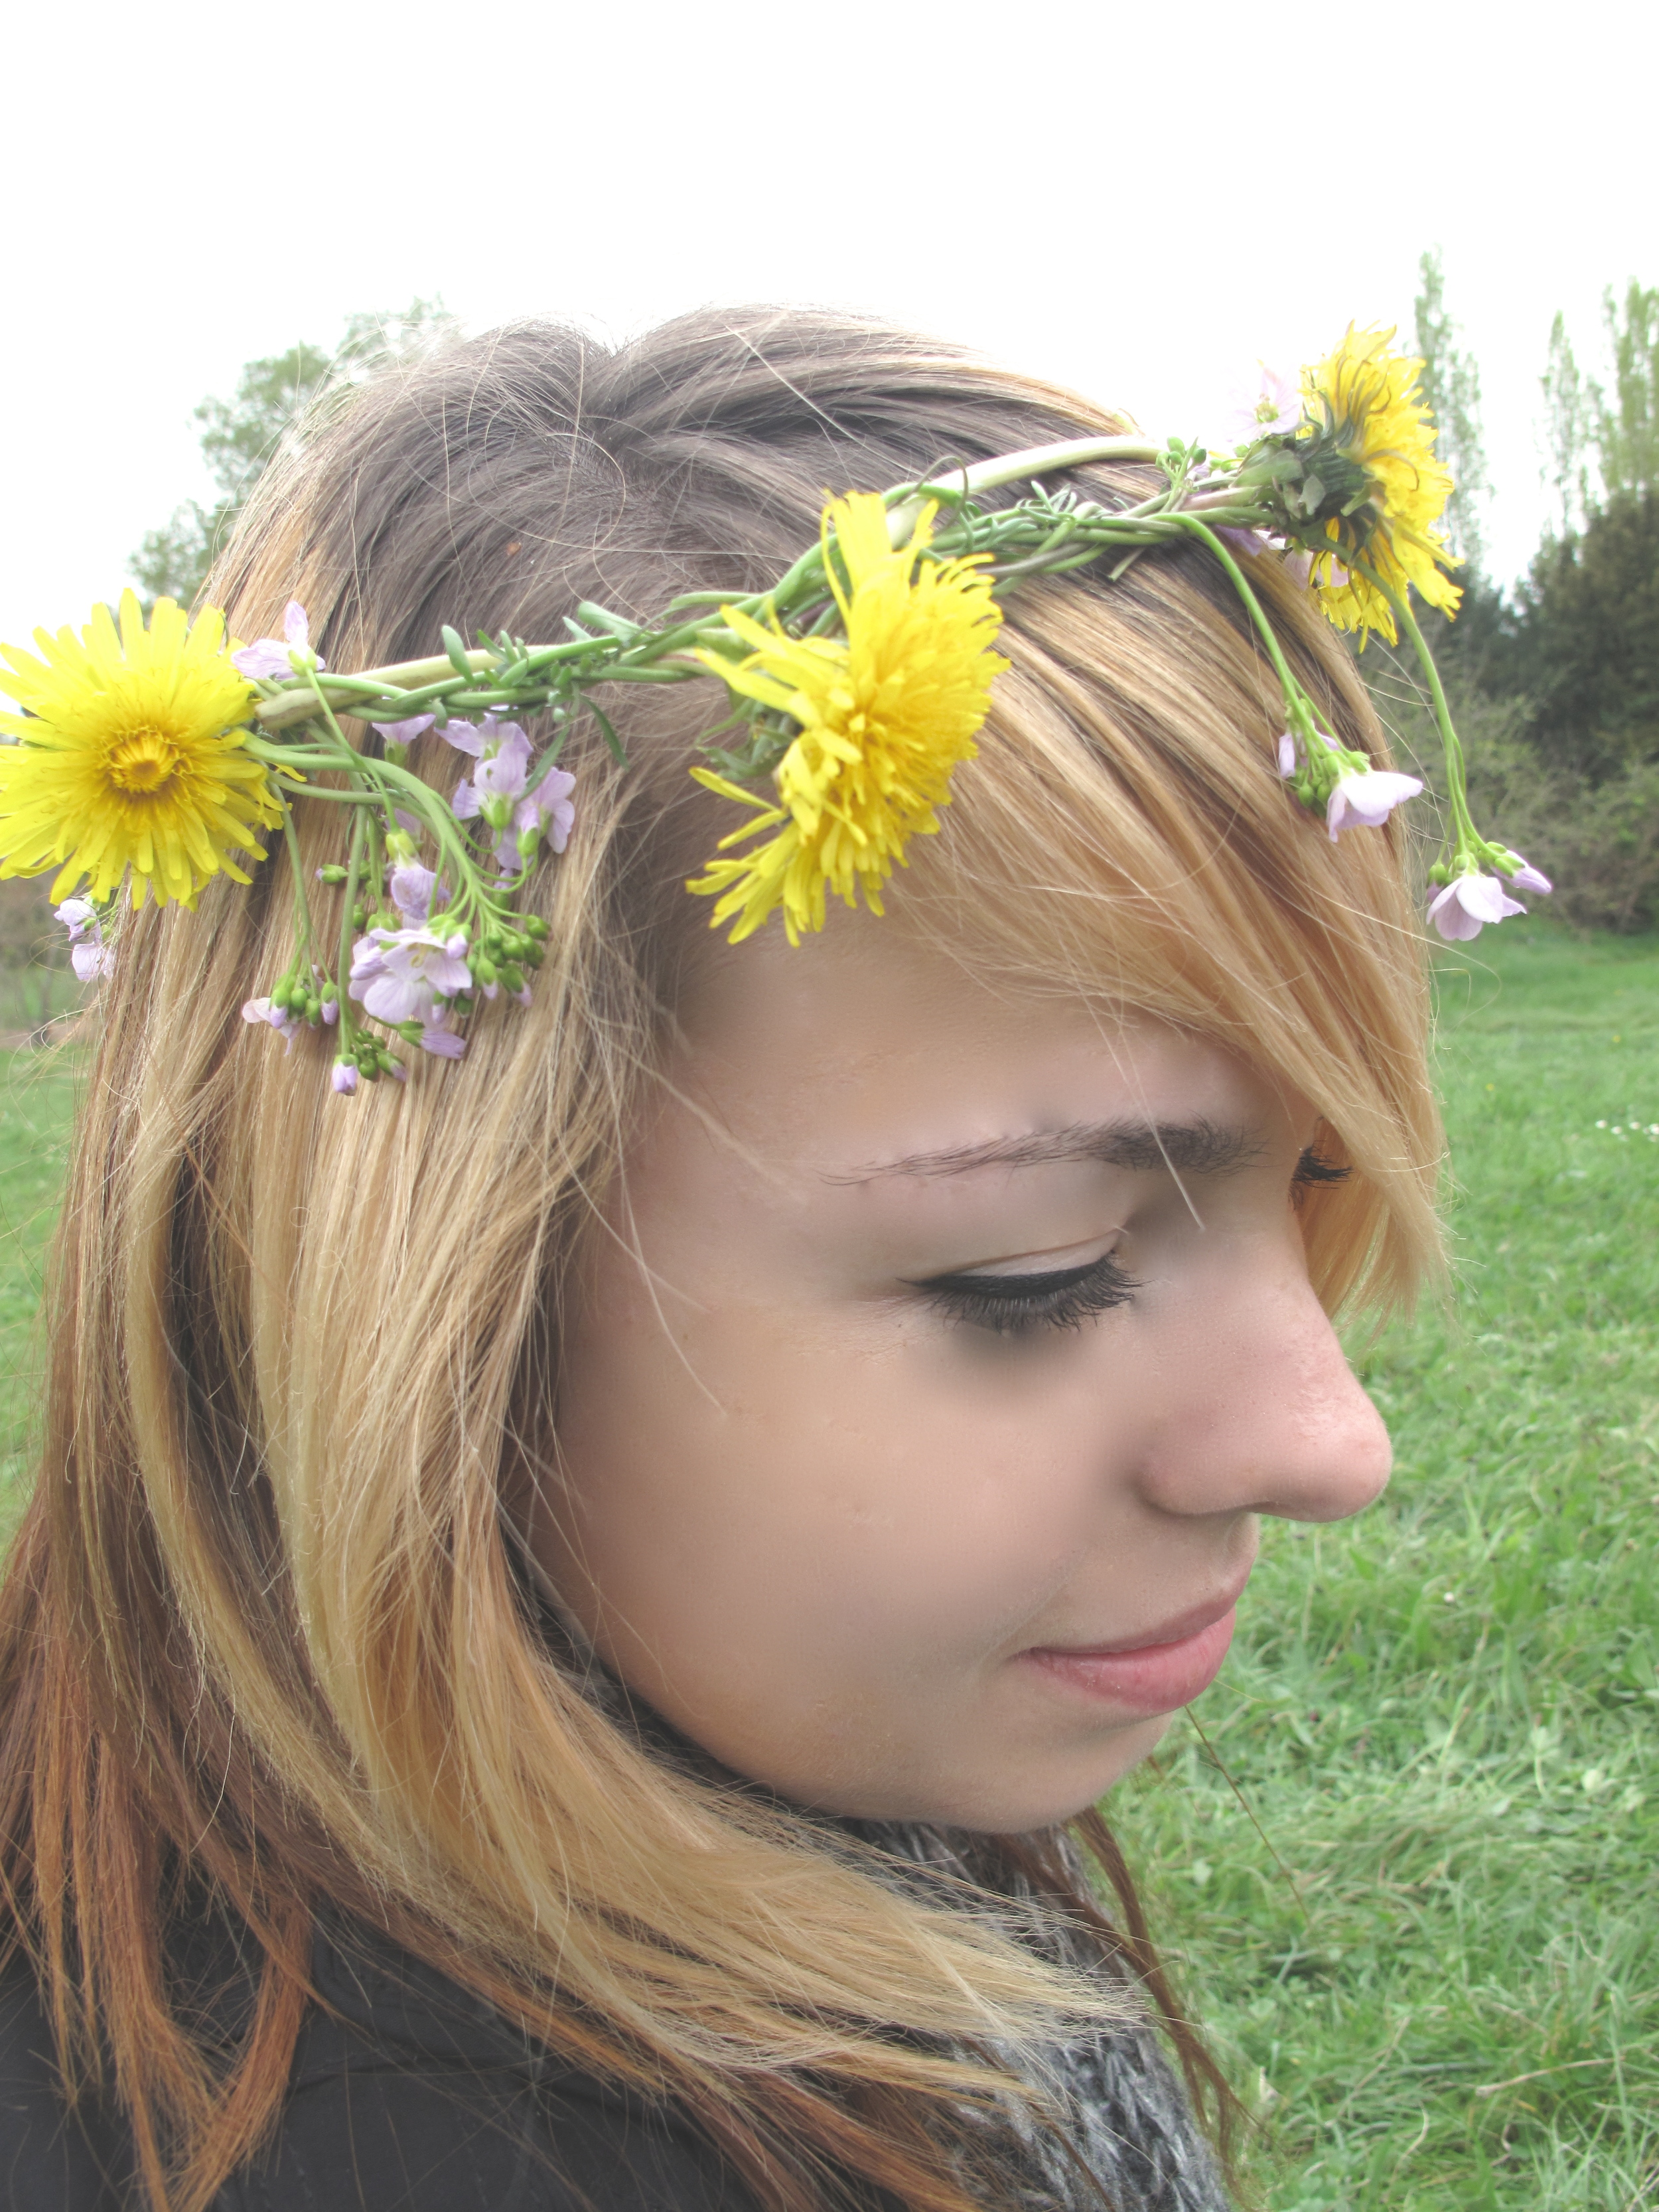 Rita with flowers in her hair on the grass at Versailles